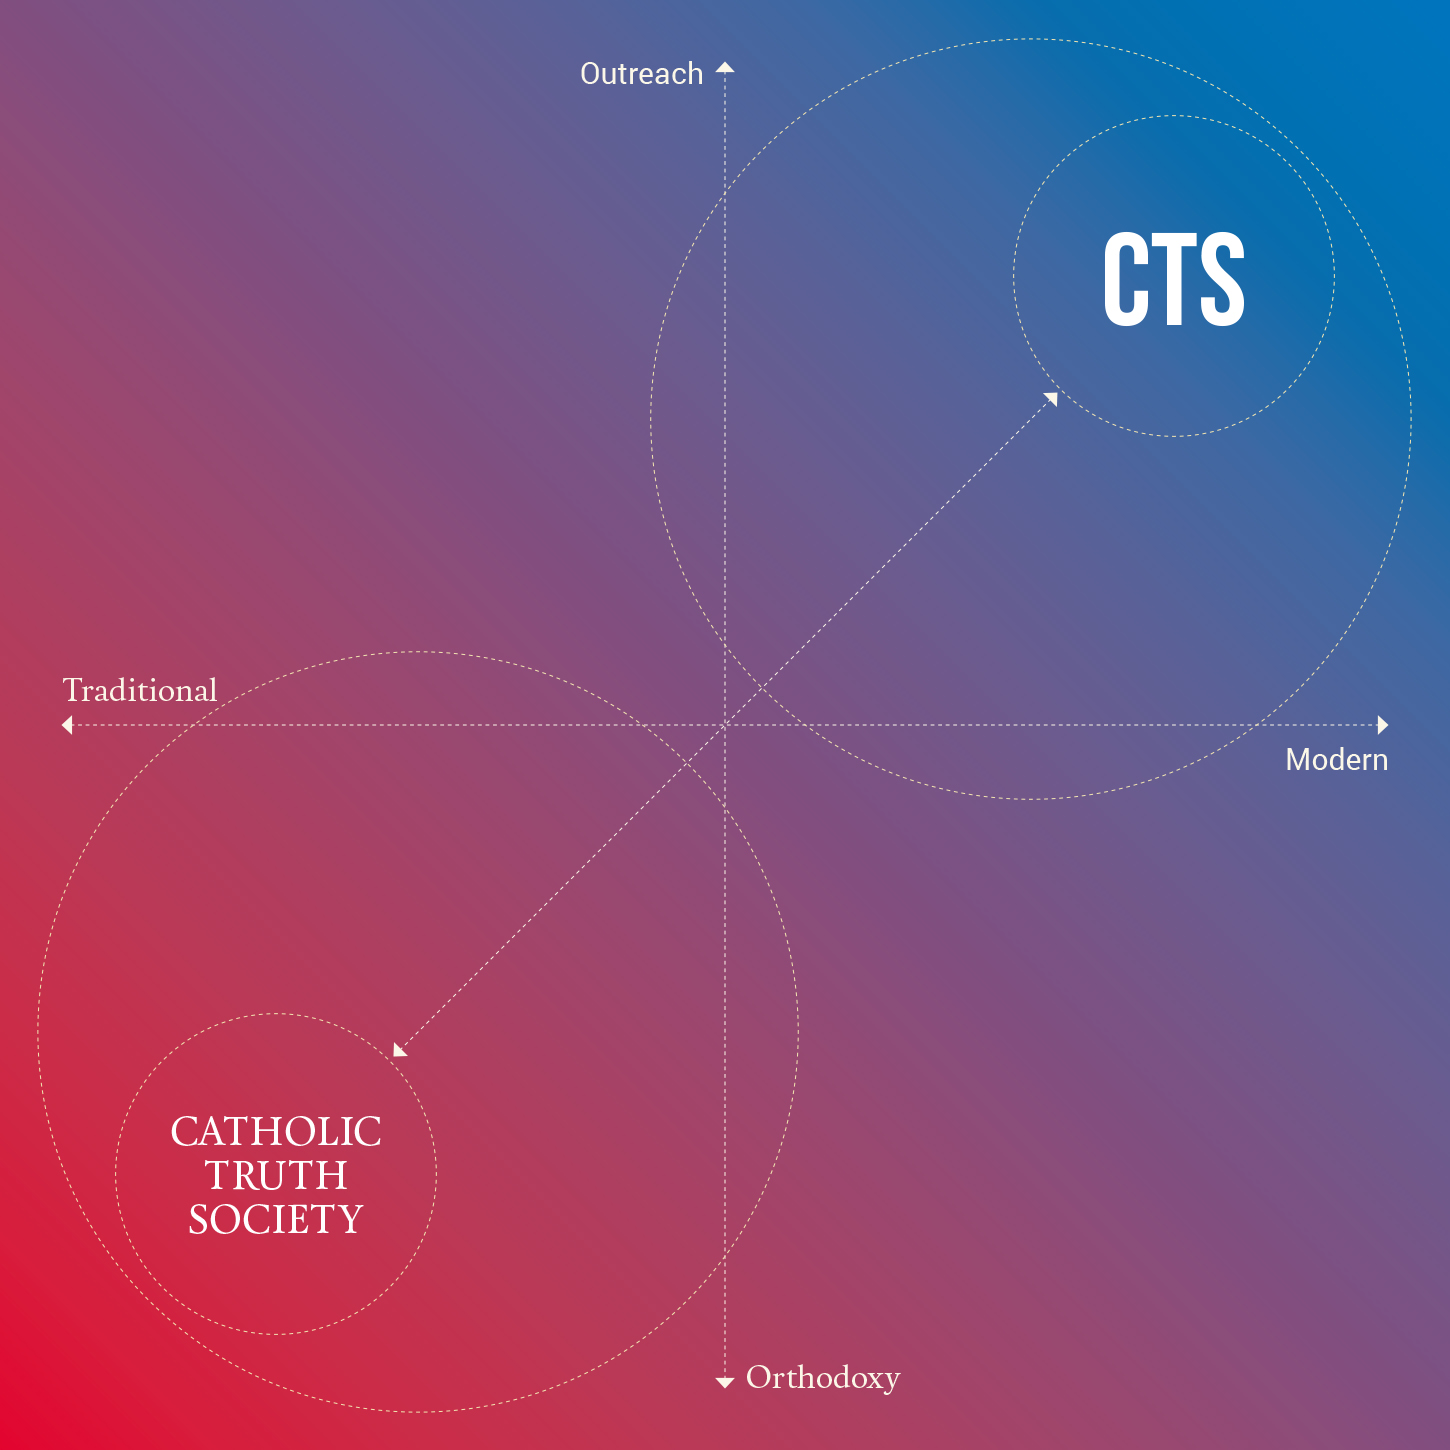 CTS brand rationale